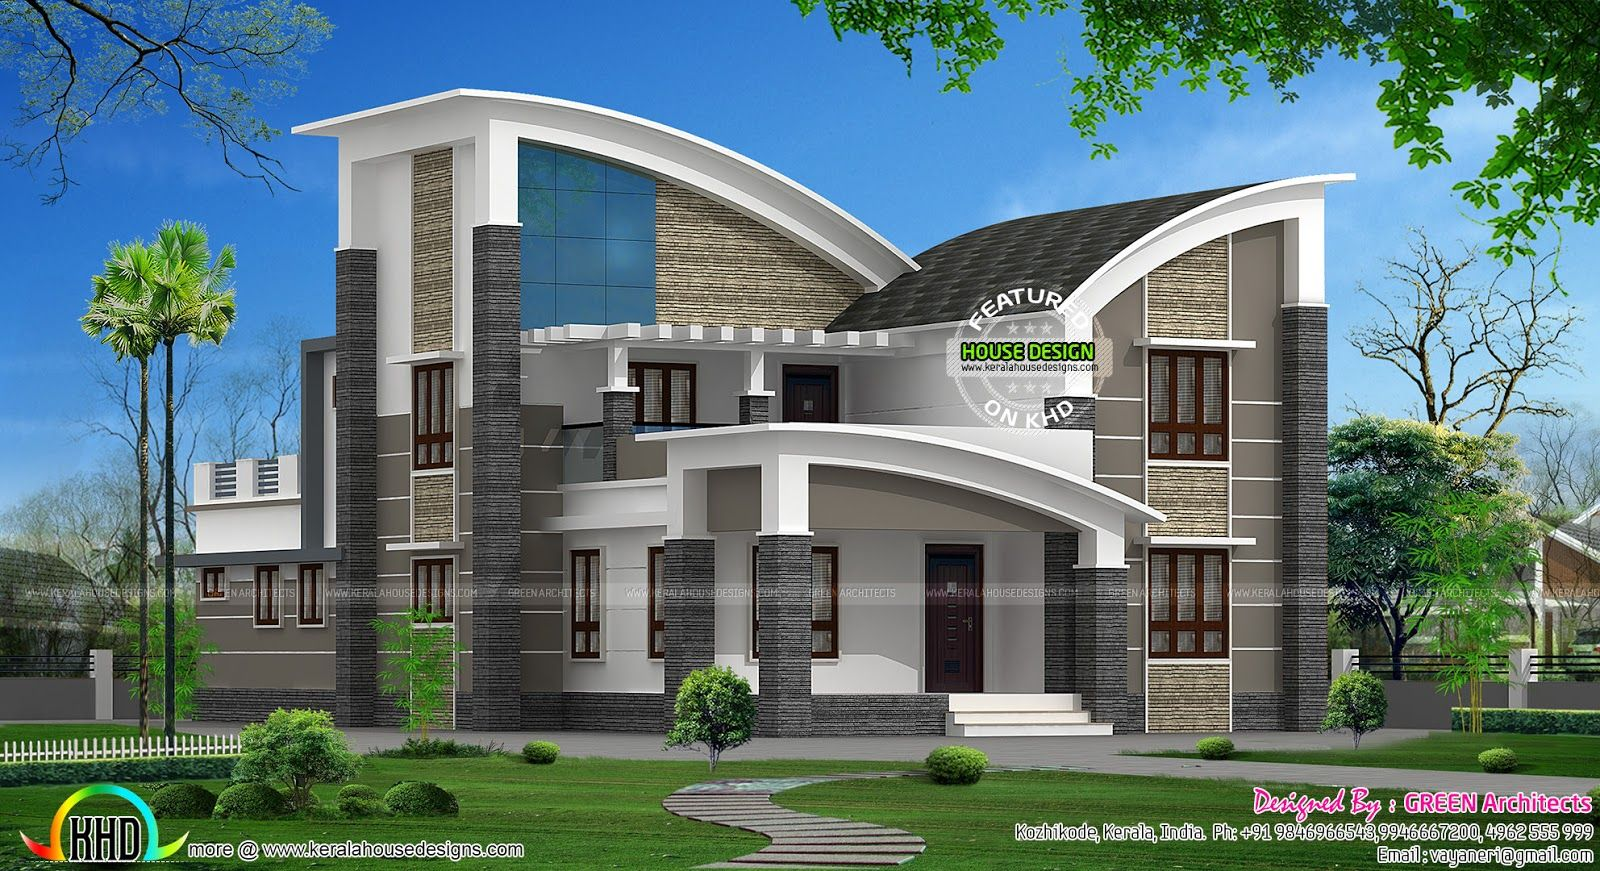 Modern style curved roof villa home inspiration pinterest villas modern and house Home building architecture